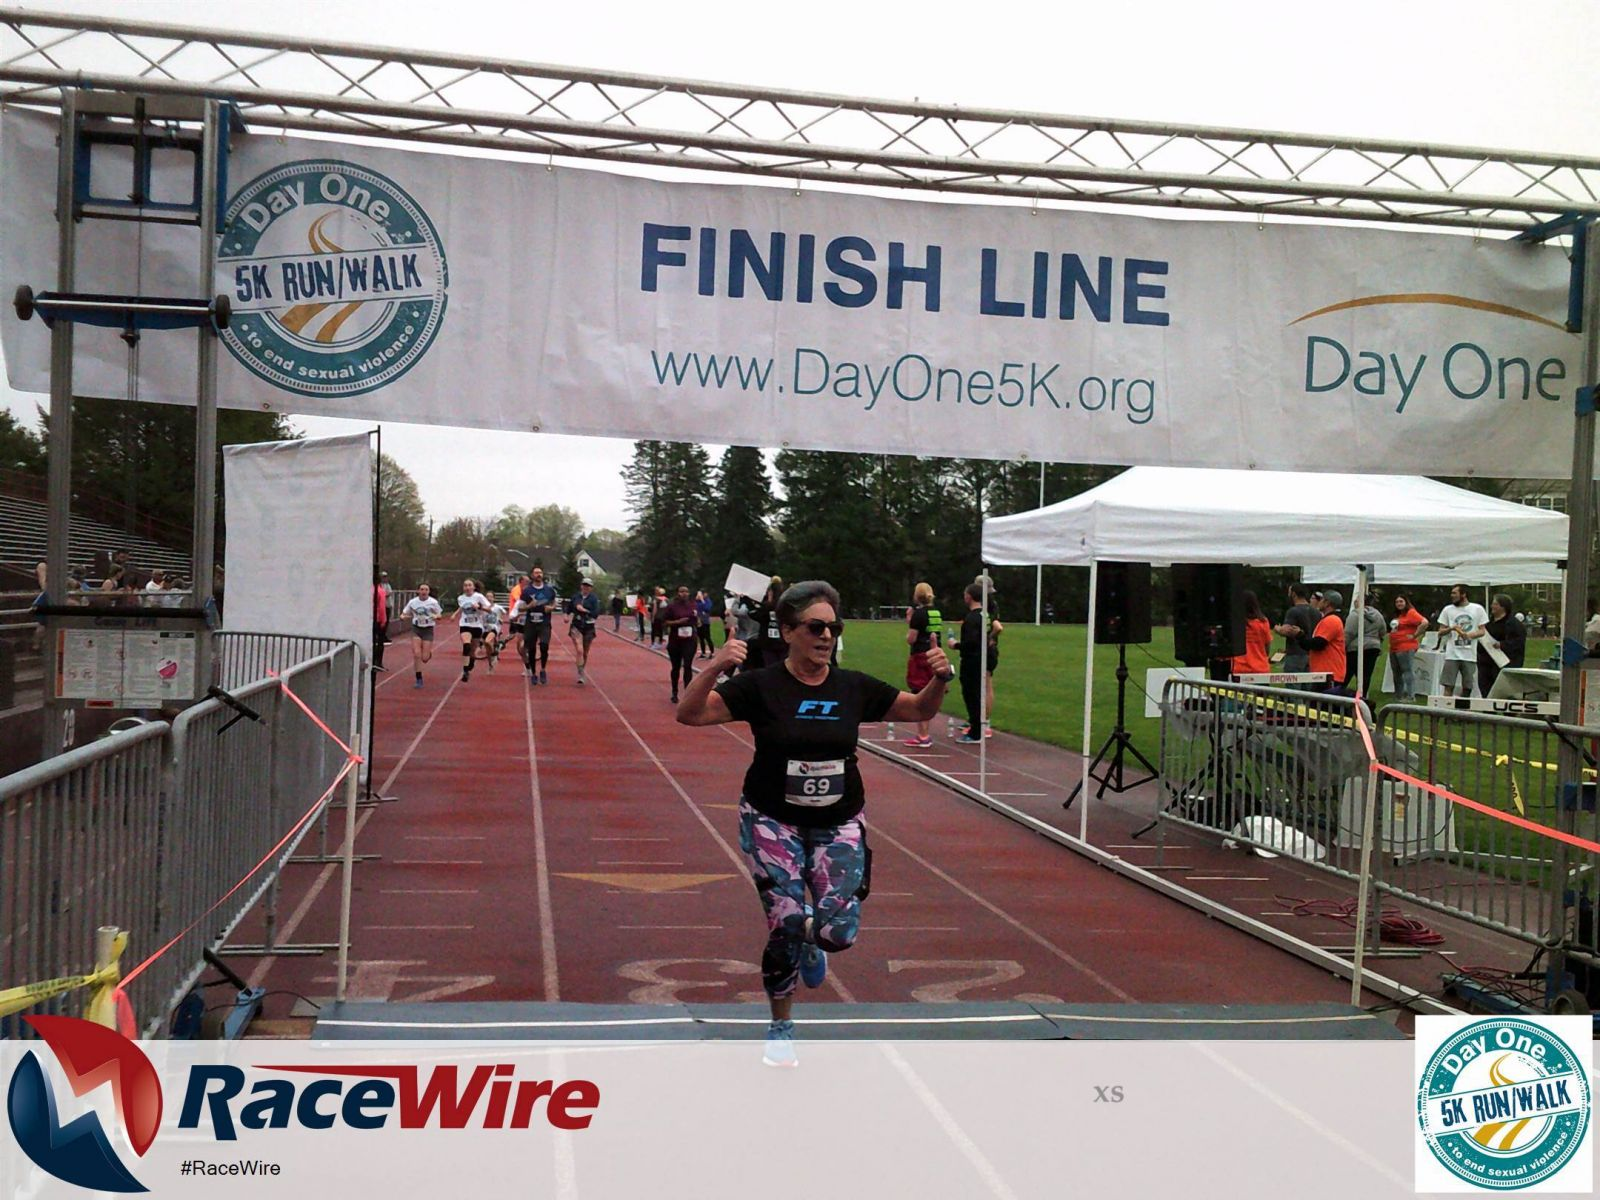 Woman giving thumbs up while crossing finish line